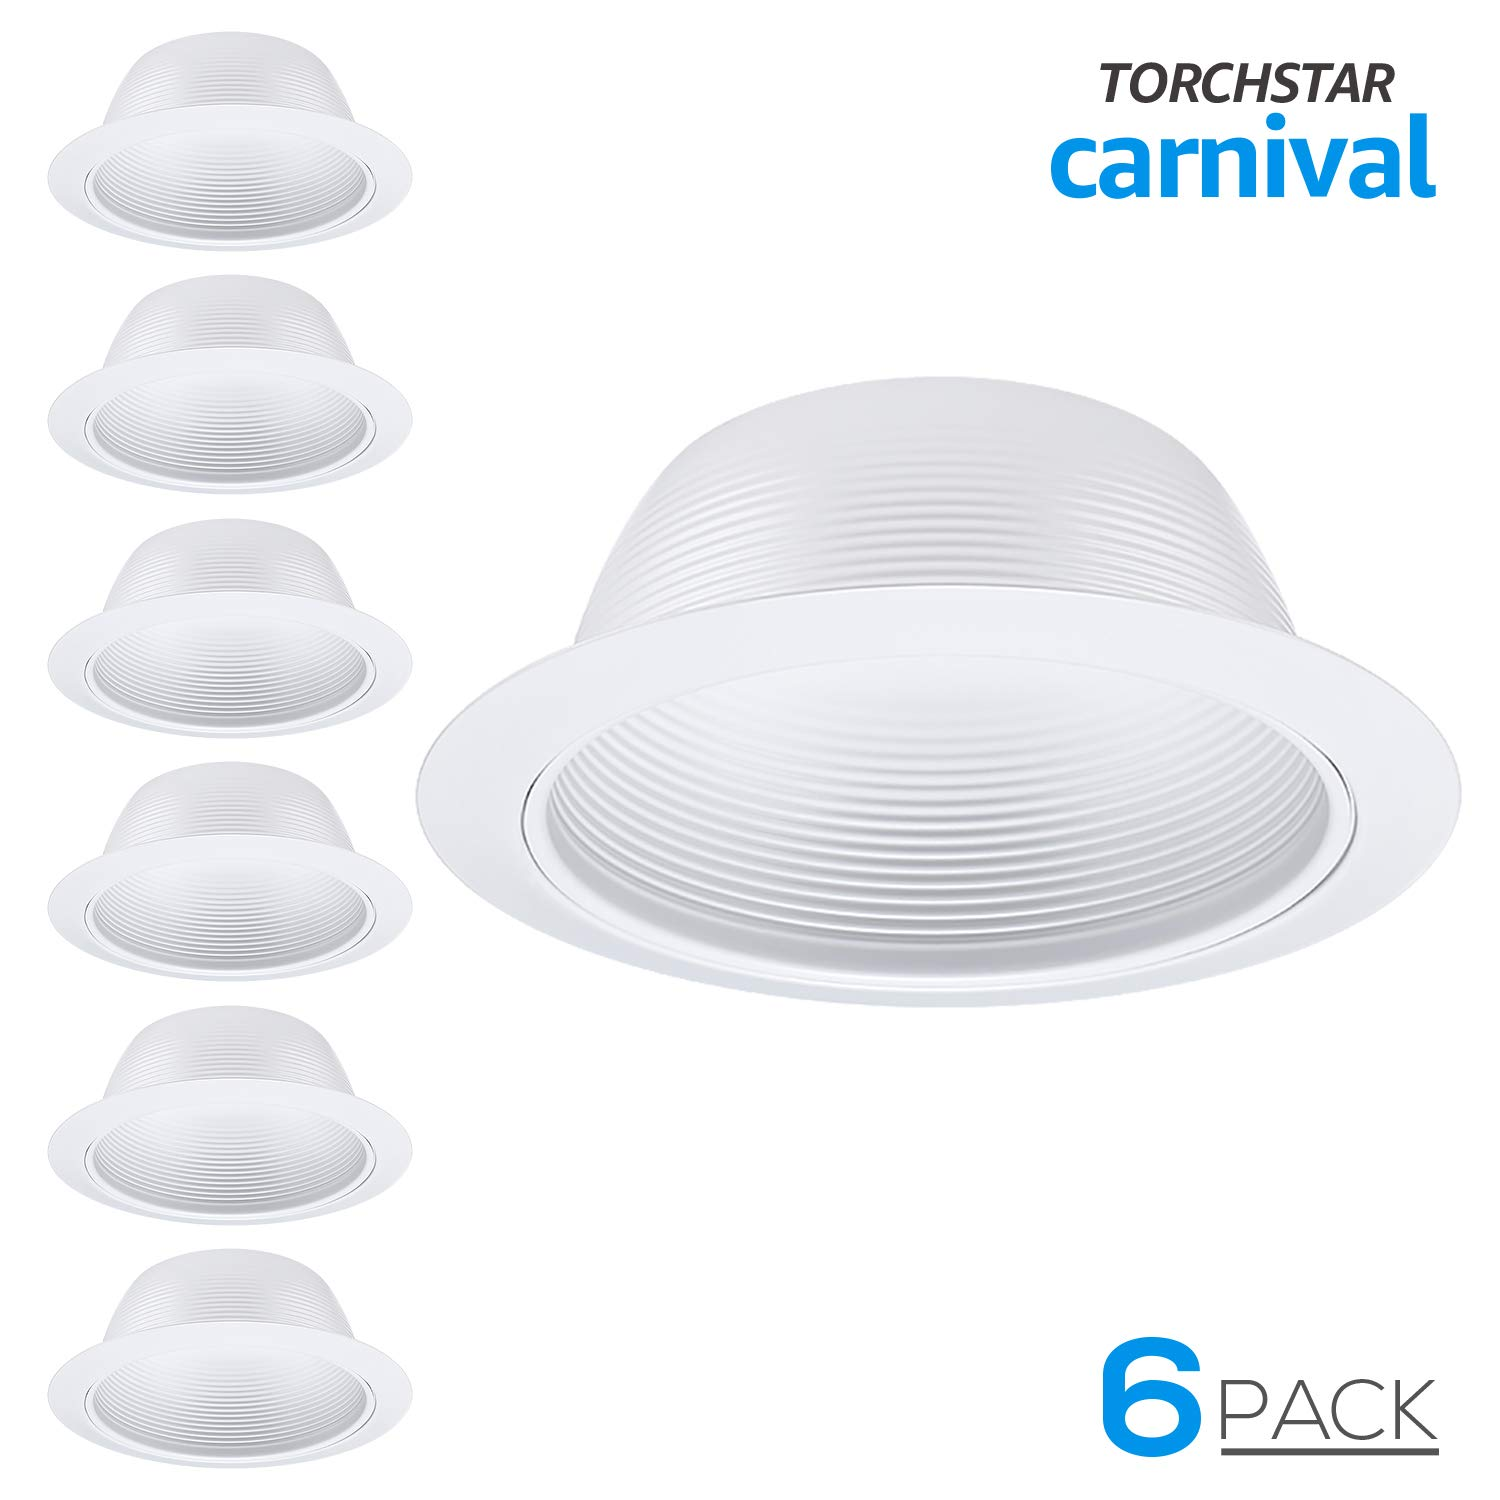 6 Pack 6 Inch Recessed Can Light Trim with White Metal Step Baffle, for 6 inch Recessed Can, Detachable Iron Ring Included, Fit Halo/Juno Remodel Recessed Housing, Line Voltage Available